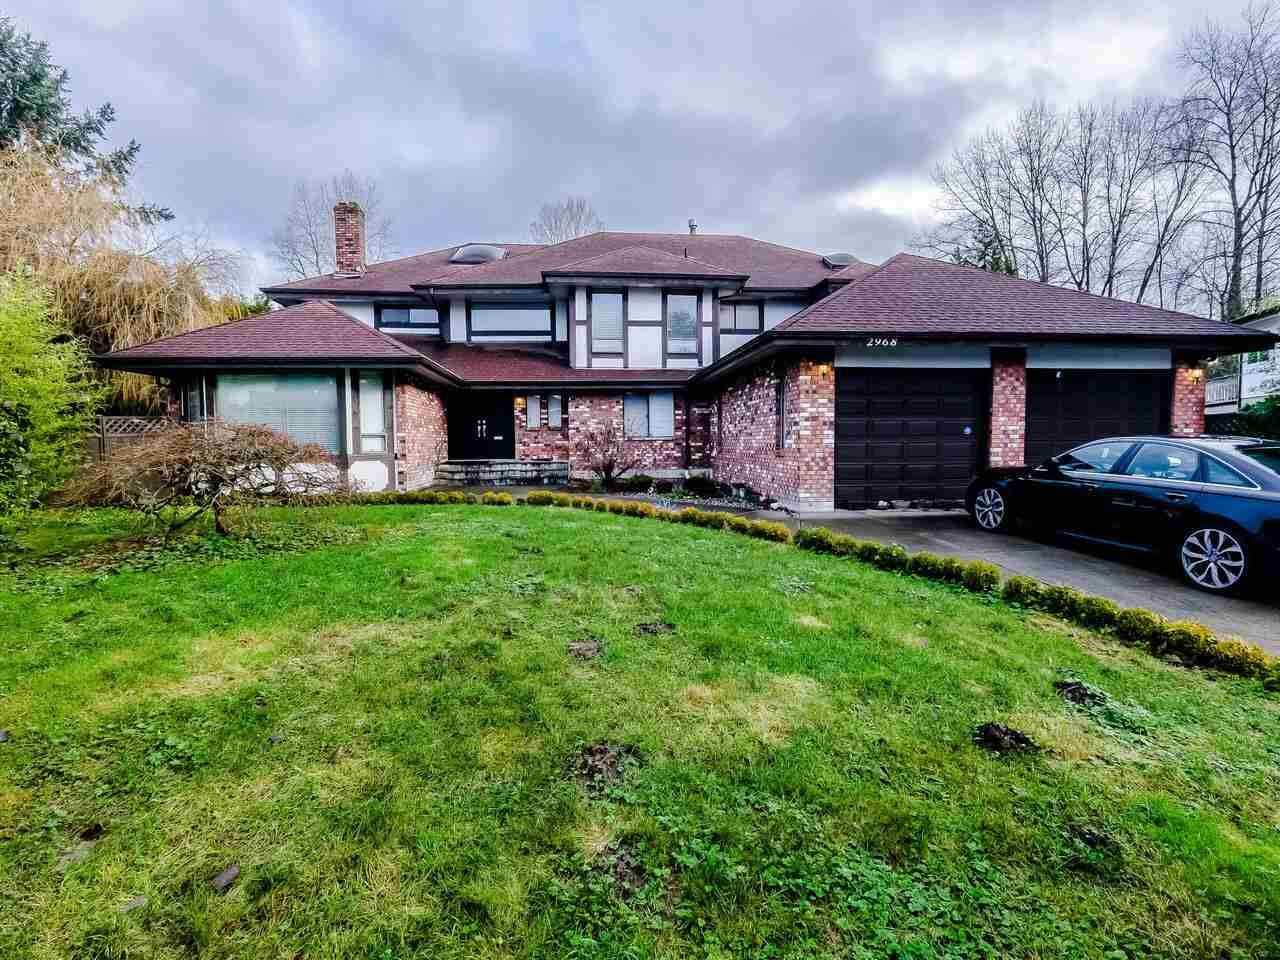 Main Photo: 2968 CHICORY PLACE in Burnaby: Government Road House for sale (Burnaby North)  : MLS®# R2526506